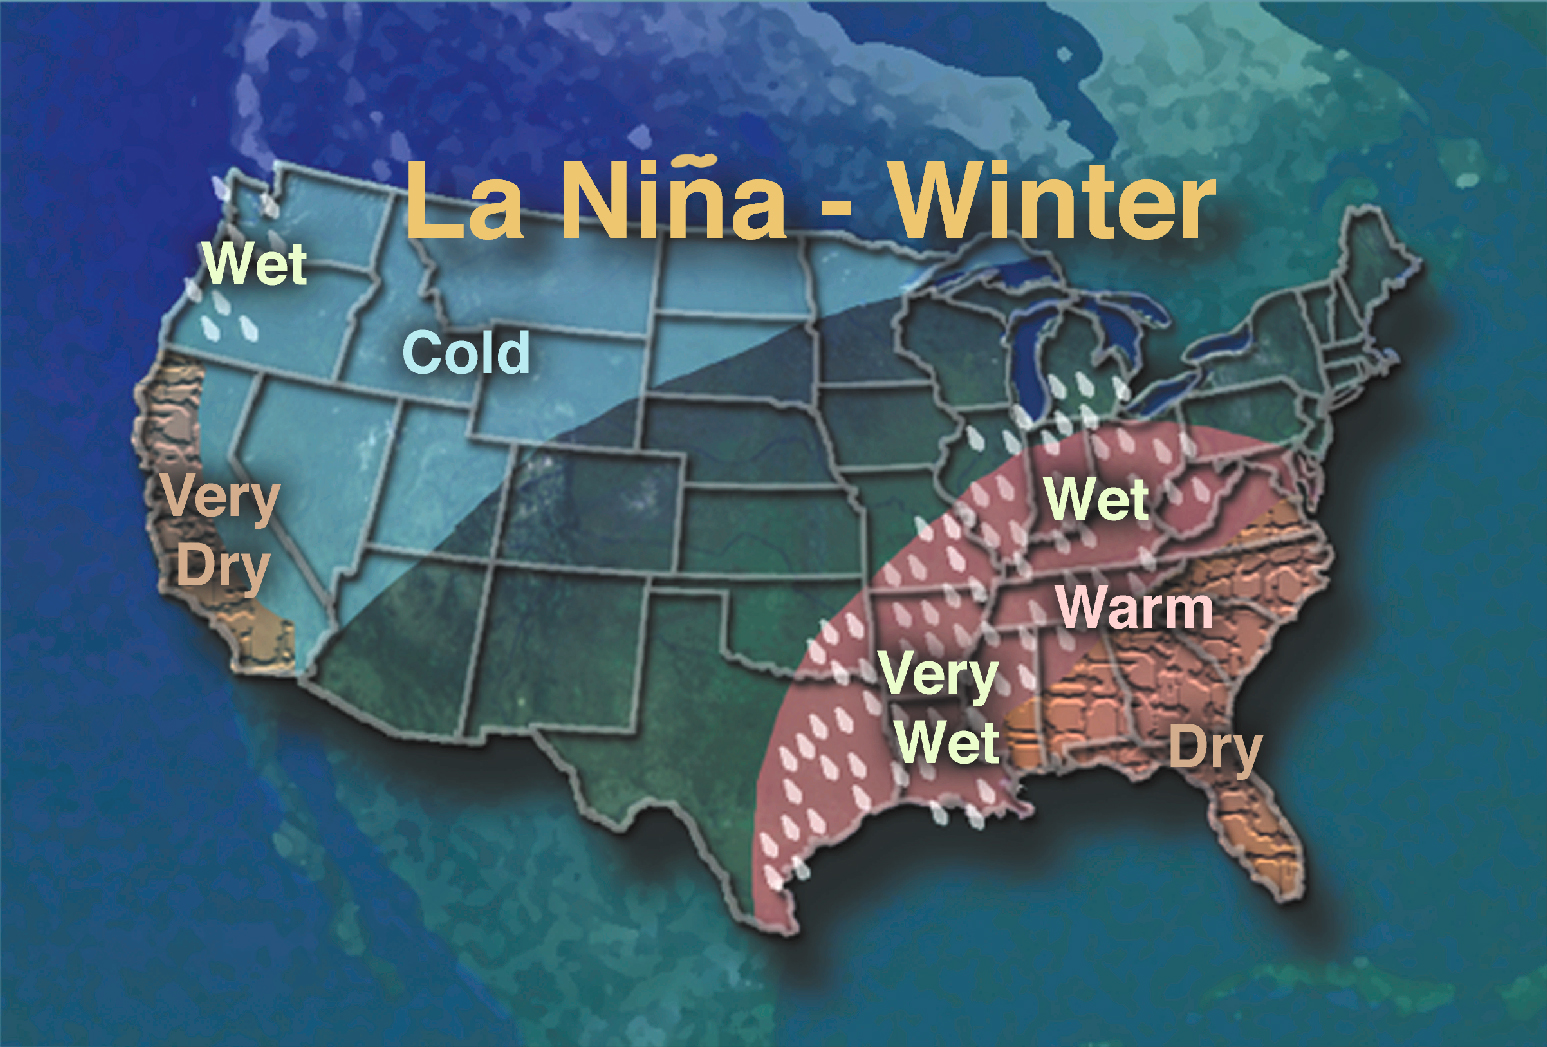 NASA NASA Observes La Niña This Little Girl Makes A Big - Current temperature map in us